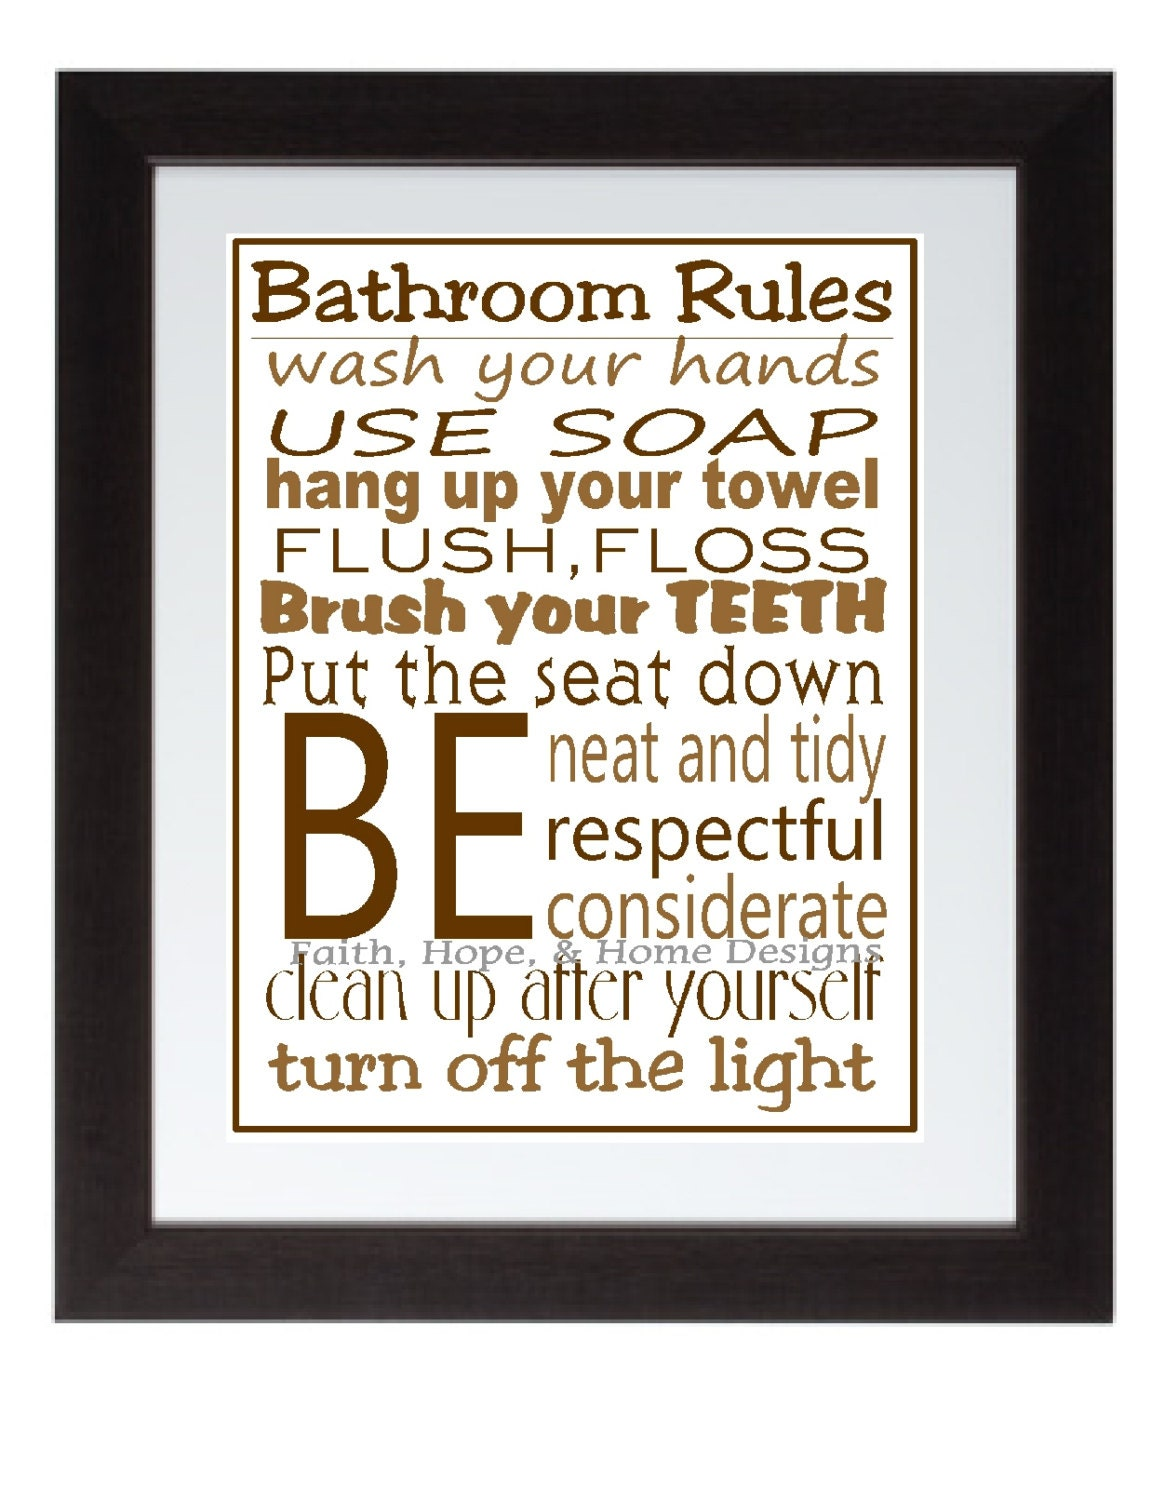 Bathroom Rules Wall Decor : Items similar to bathroom rules wall art poster print